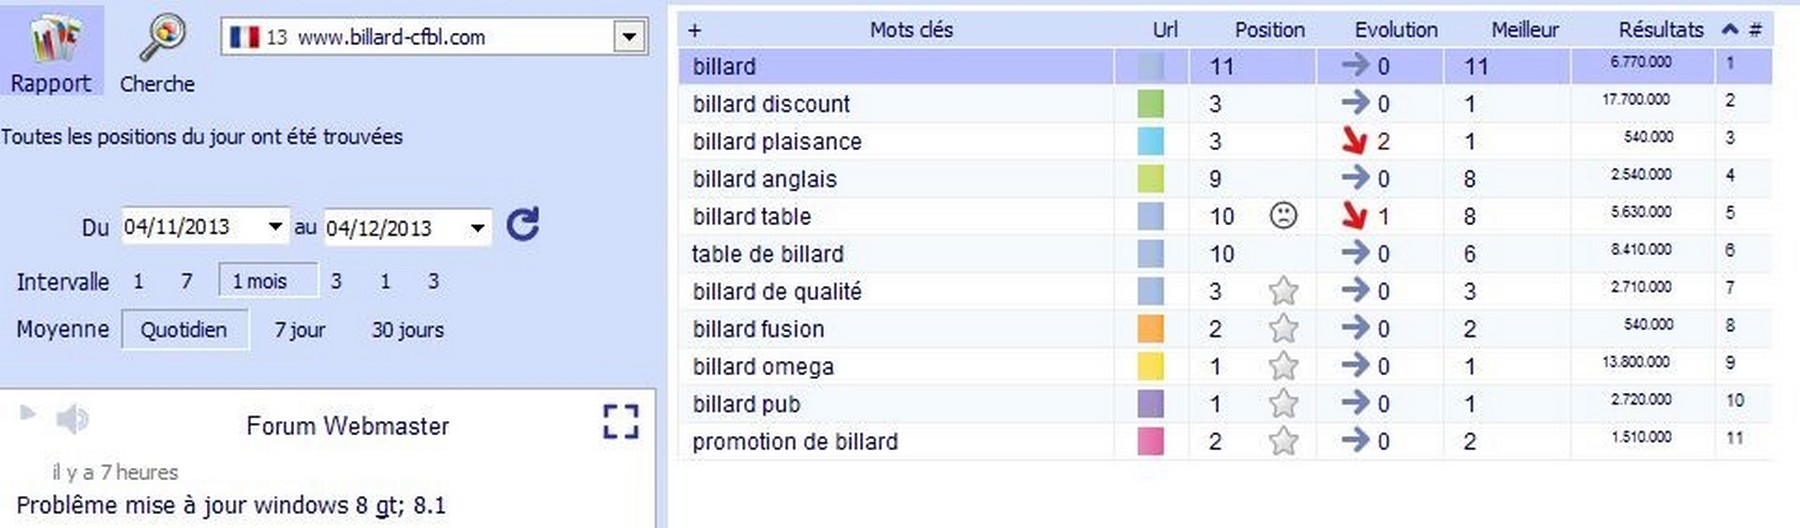 Positions sur Google